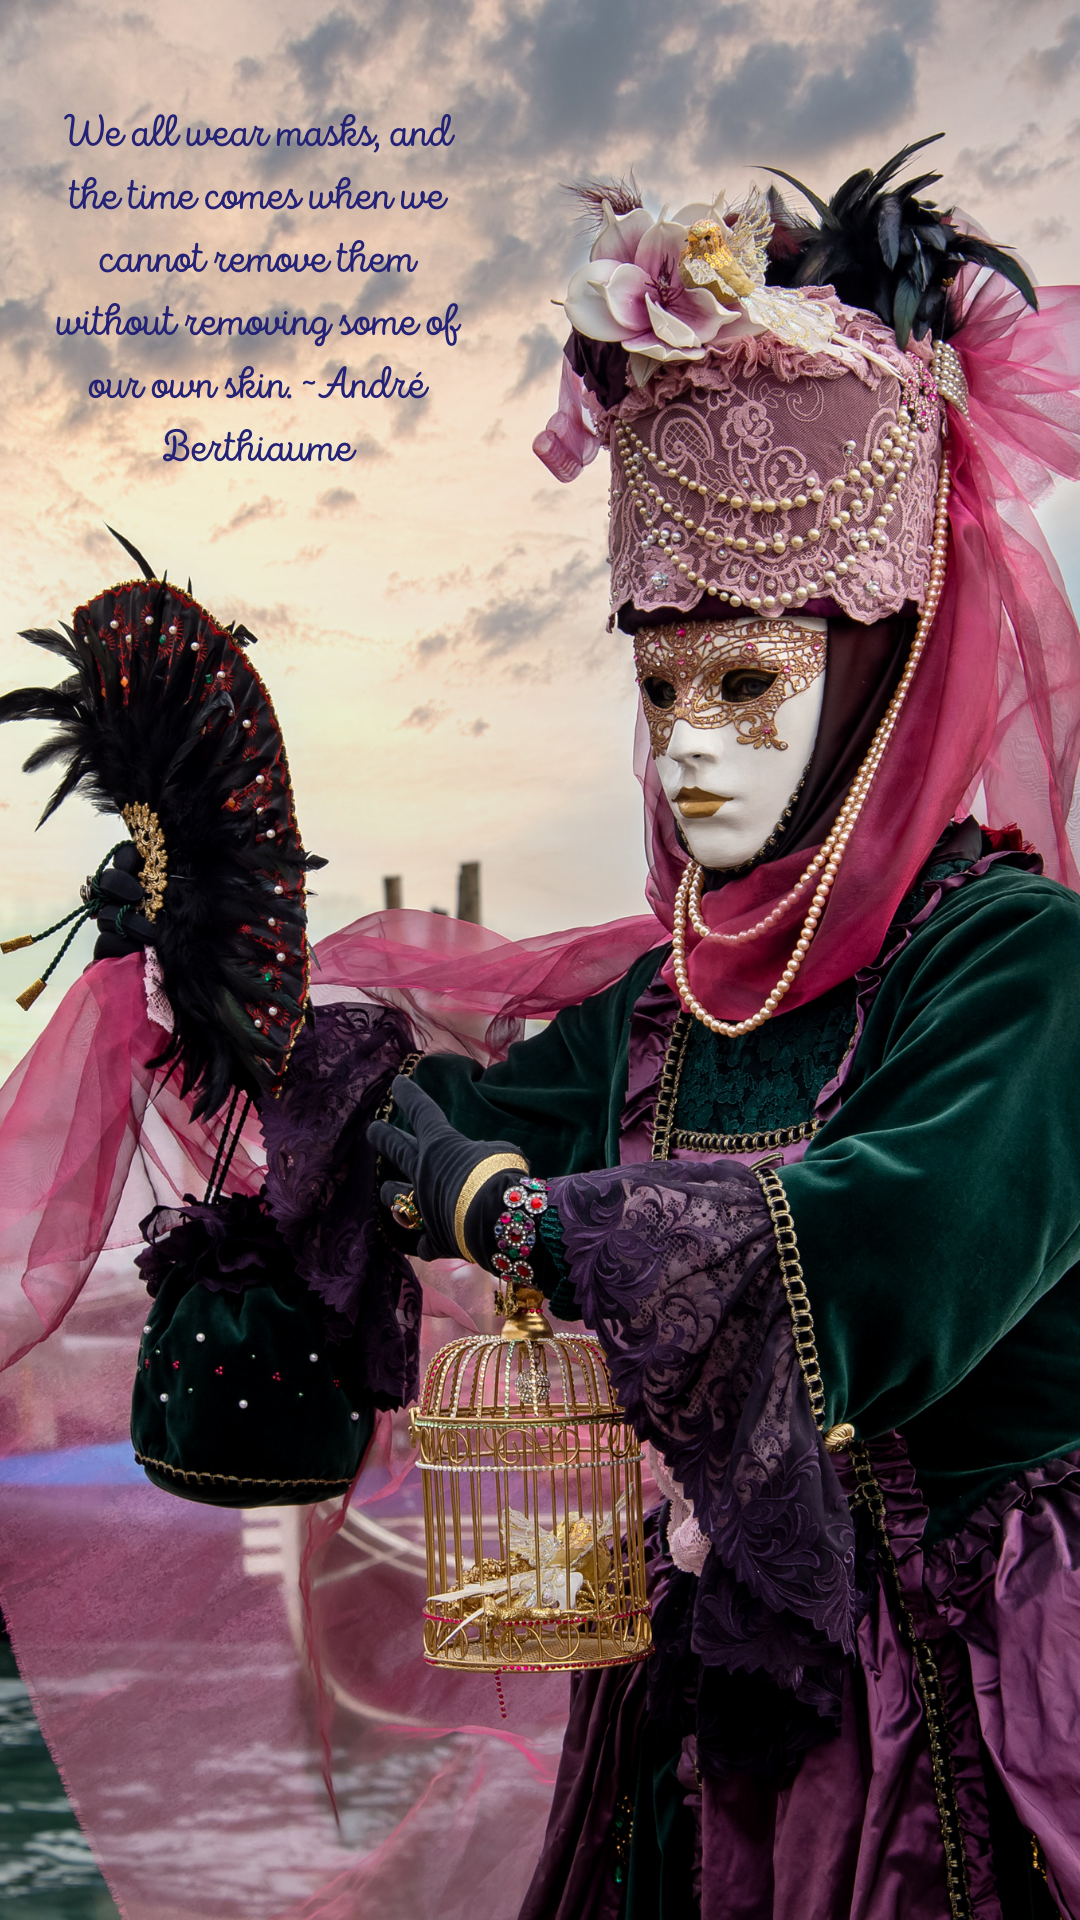 """Person wearing mask. Quote overlays it saying, """"We all wear masks, and the time comes when we cannot remove them without removing some of our own skin."""" ~André Berthiaume"""